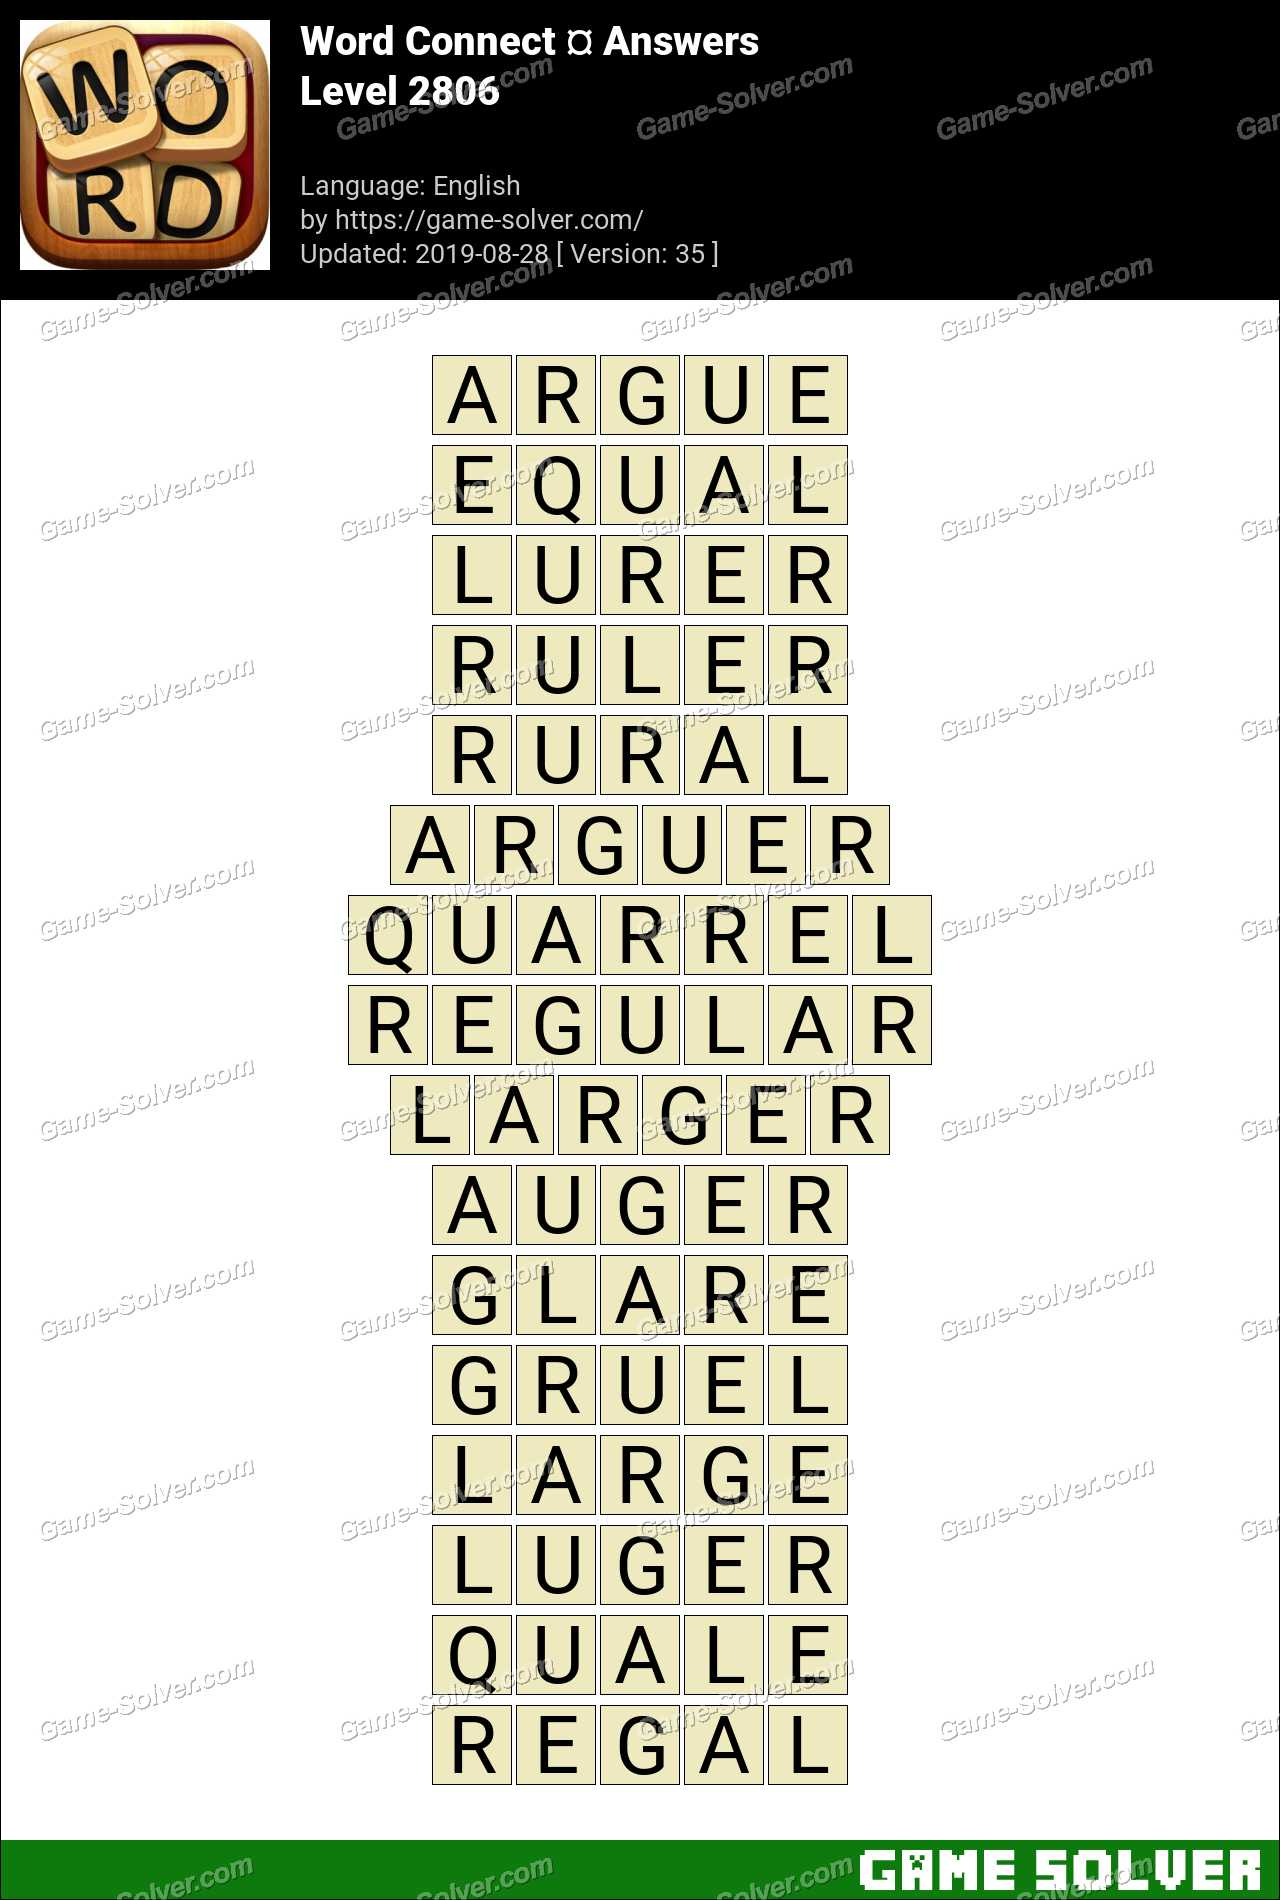 Word Connect Level 2806 Answers